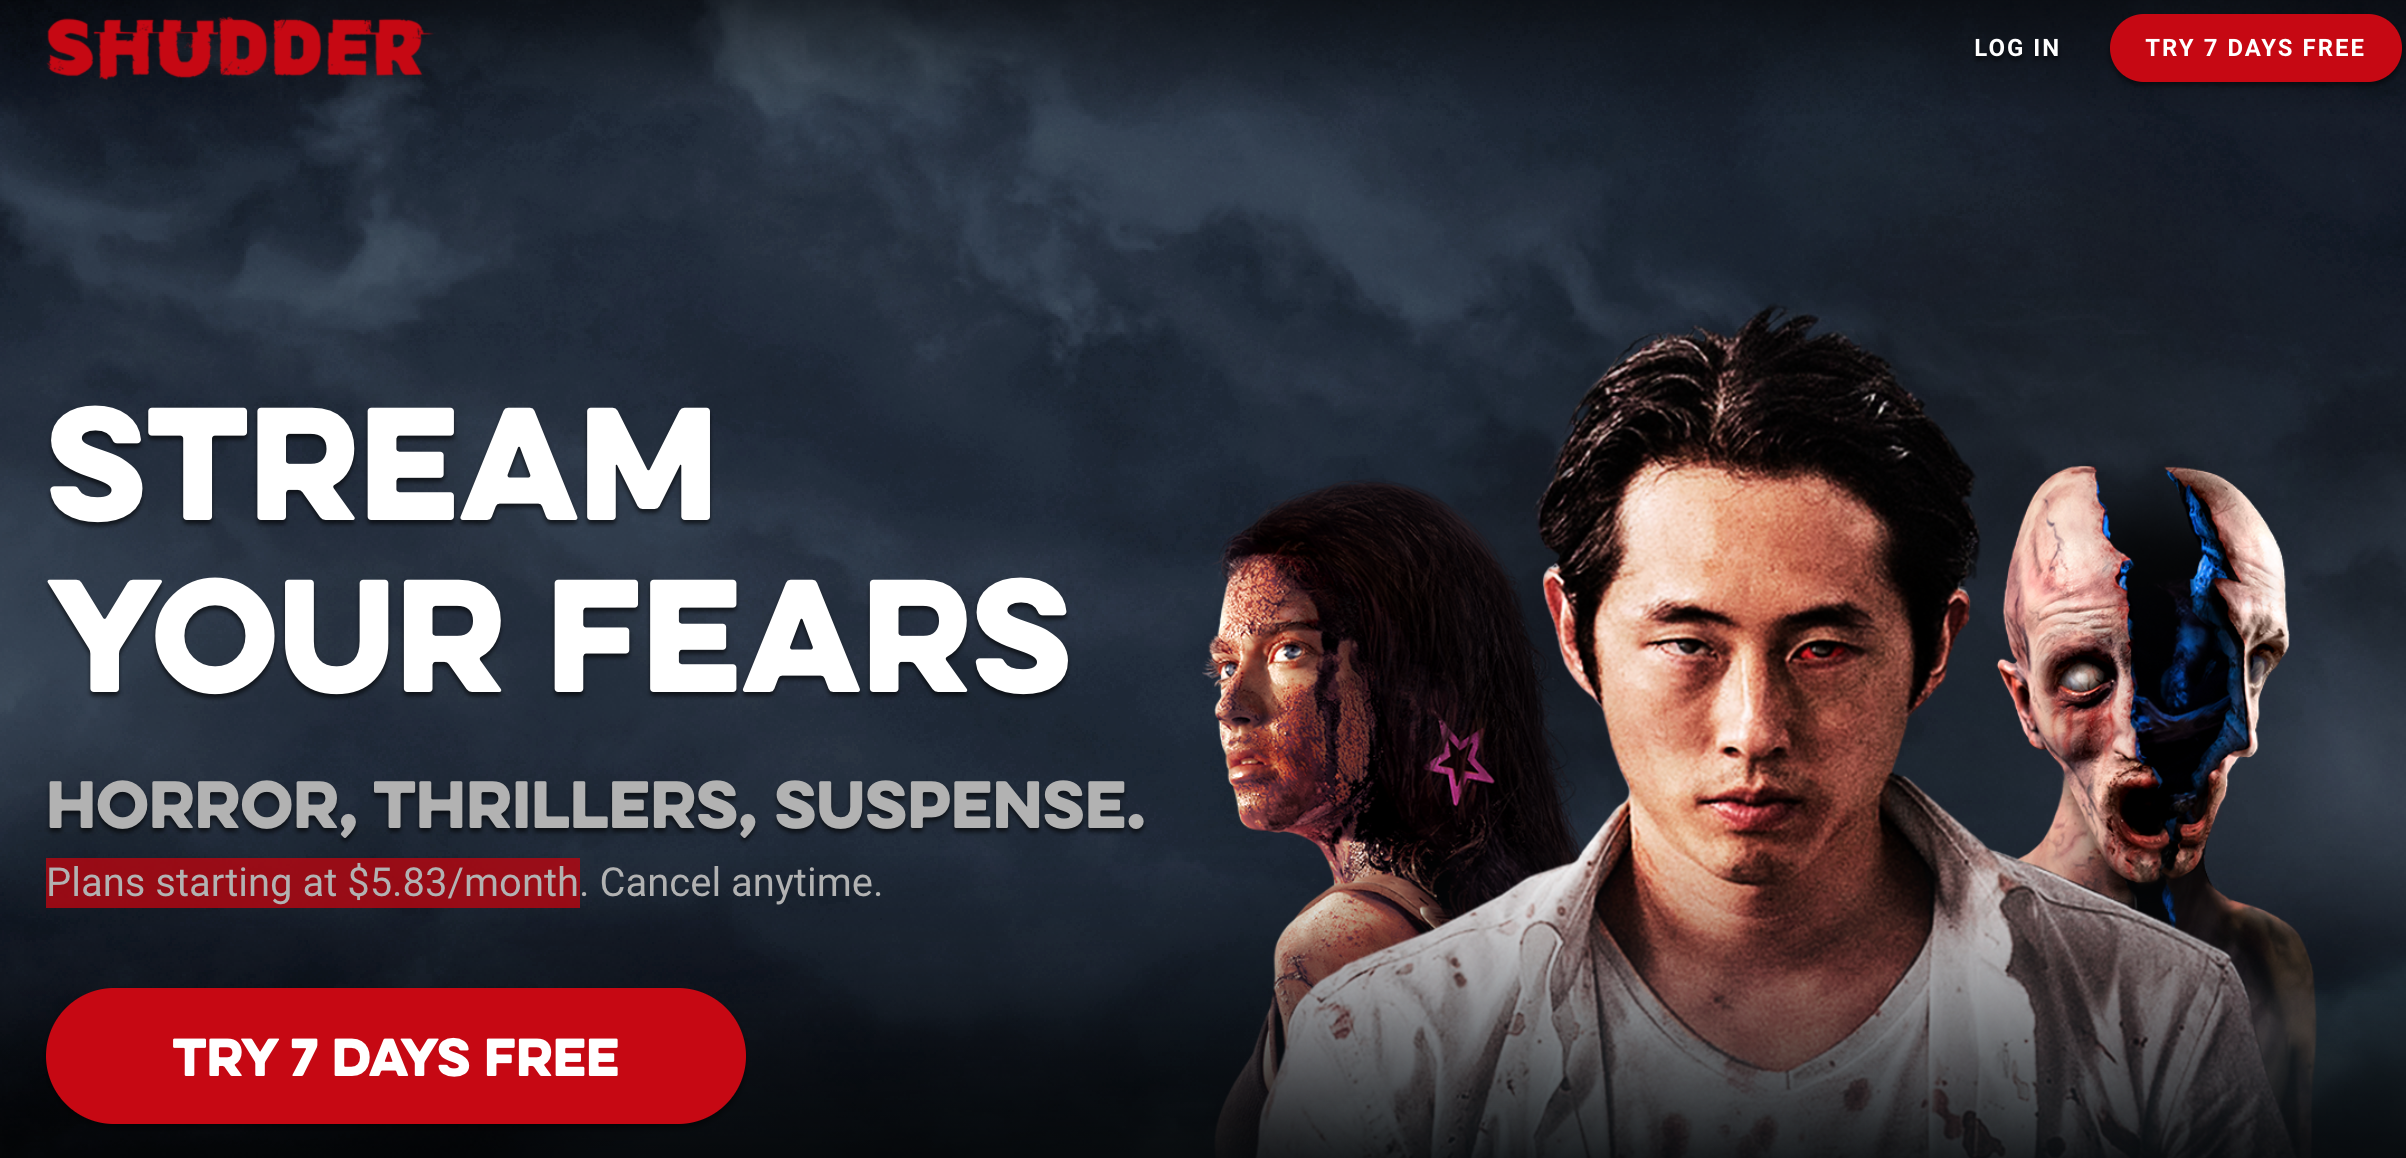 Stream Your Fears Horror Thrillers Suspense